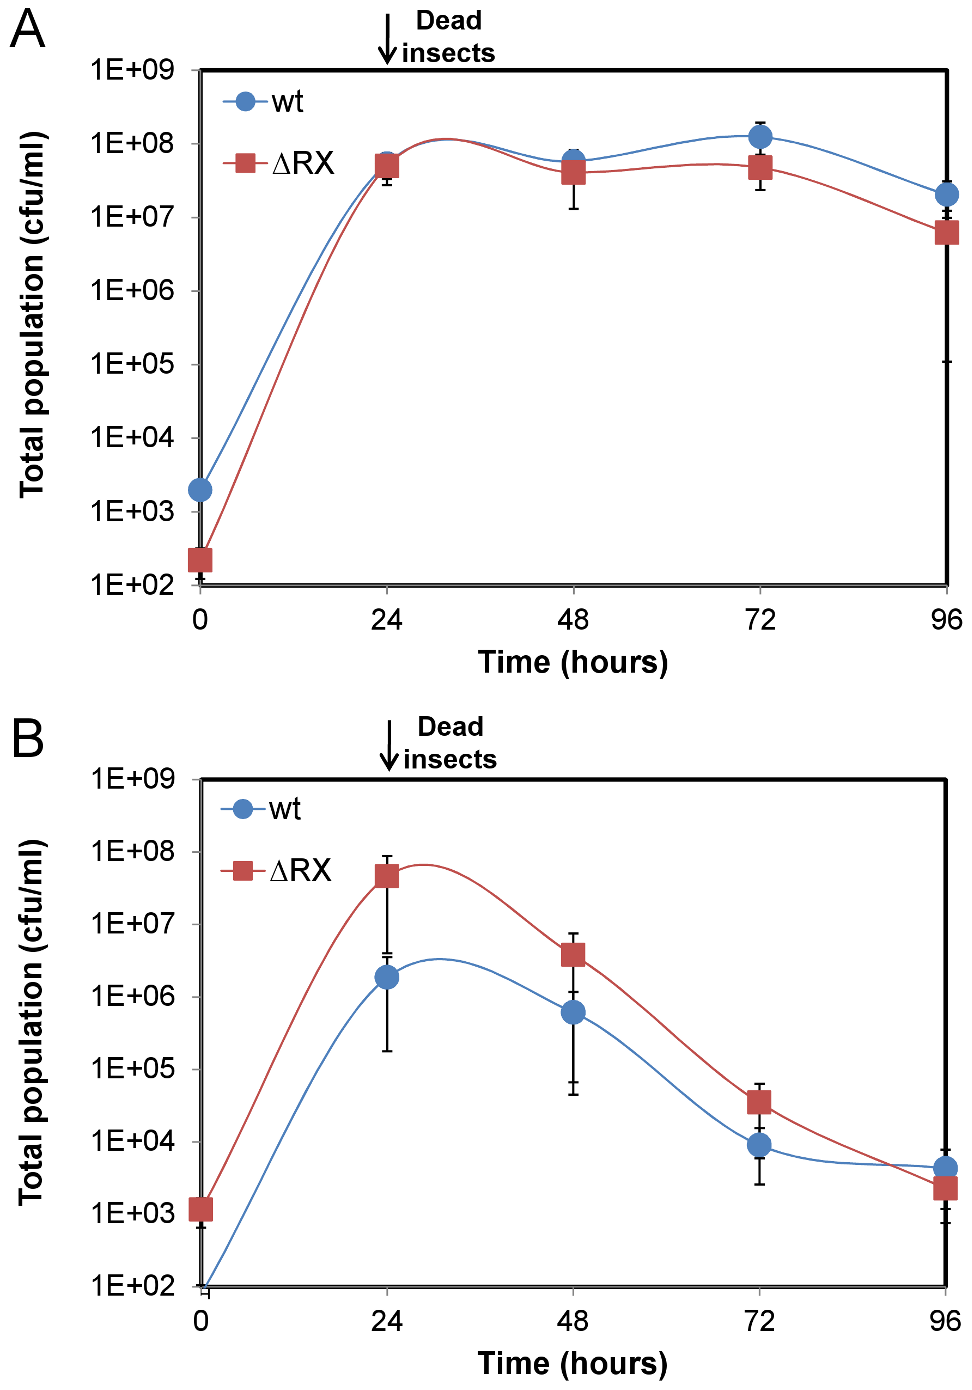 A NprR-regulated secreted factor allows <i>Bt</i> to survive in the insect host.